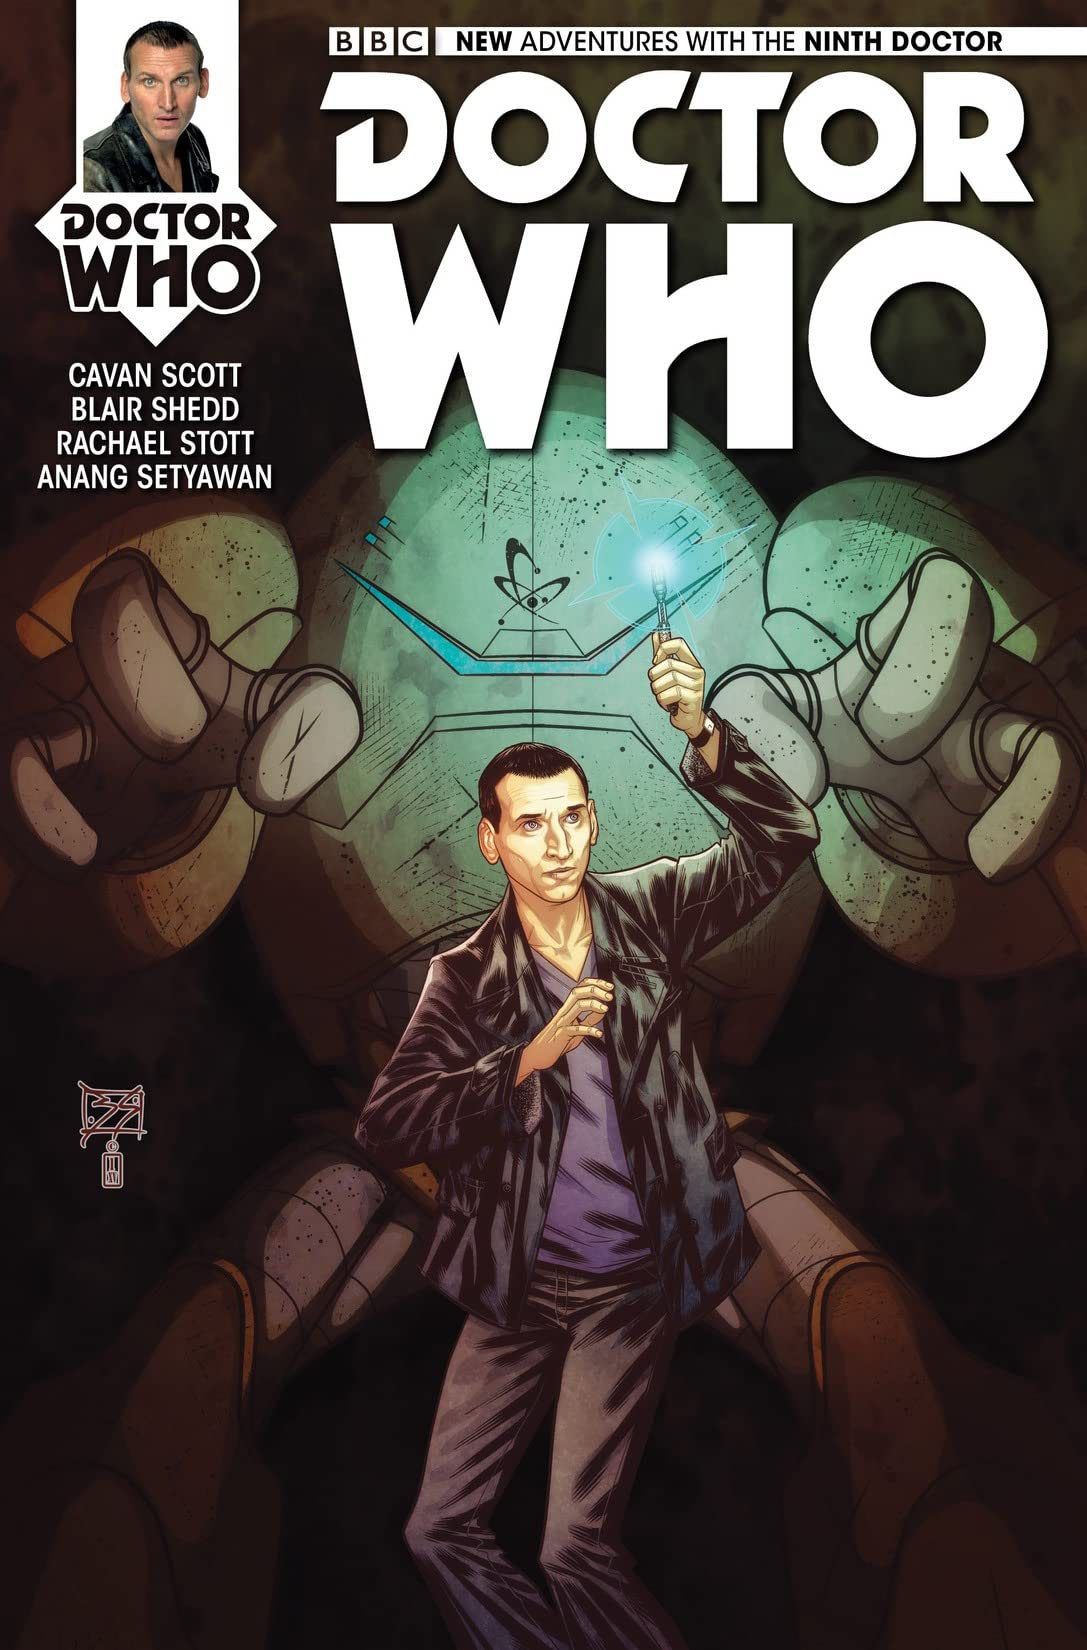 Doctor Who: The Ninth Doctor #3